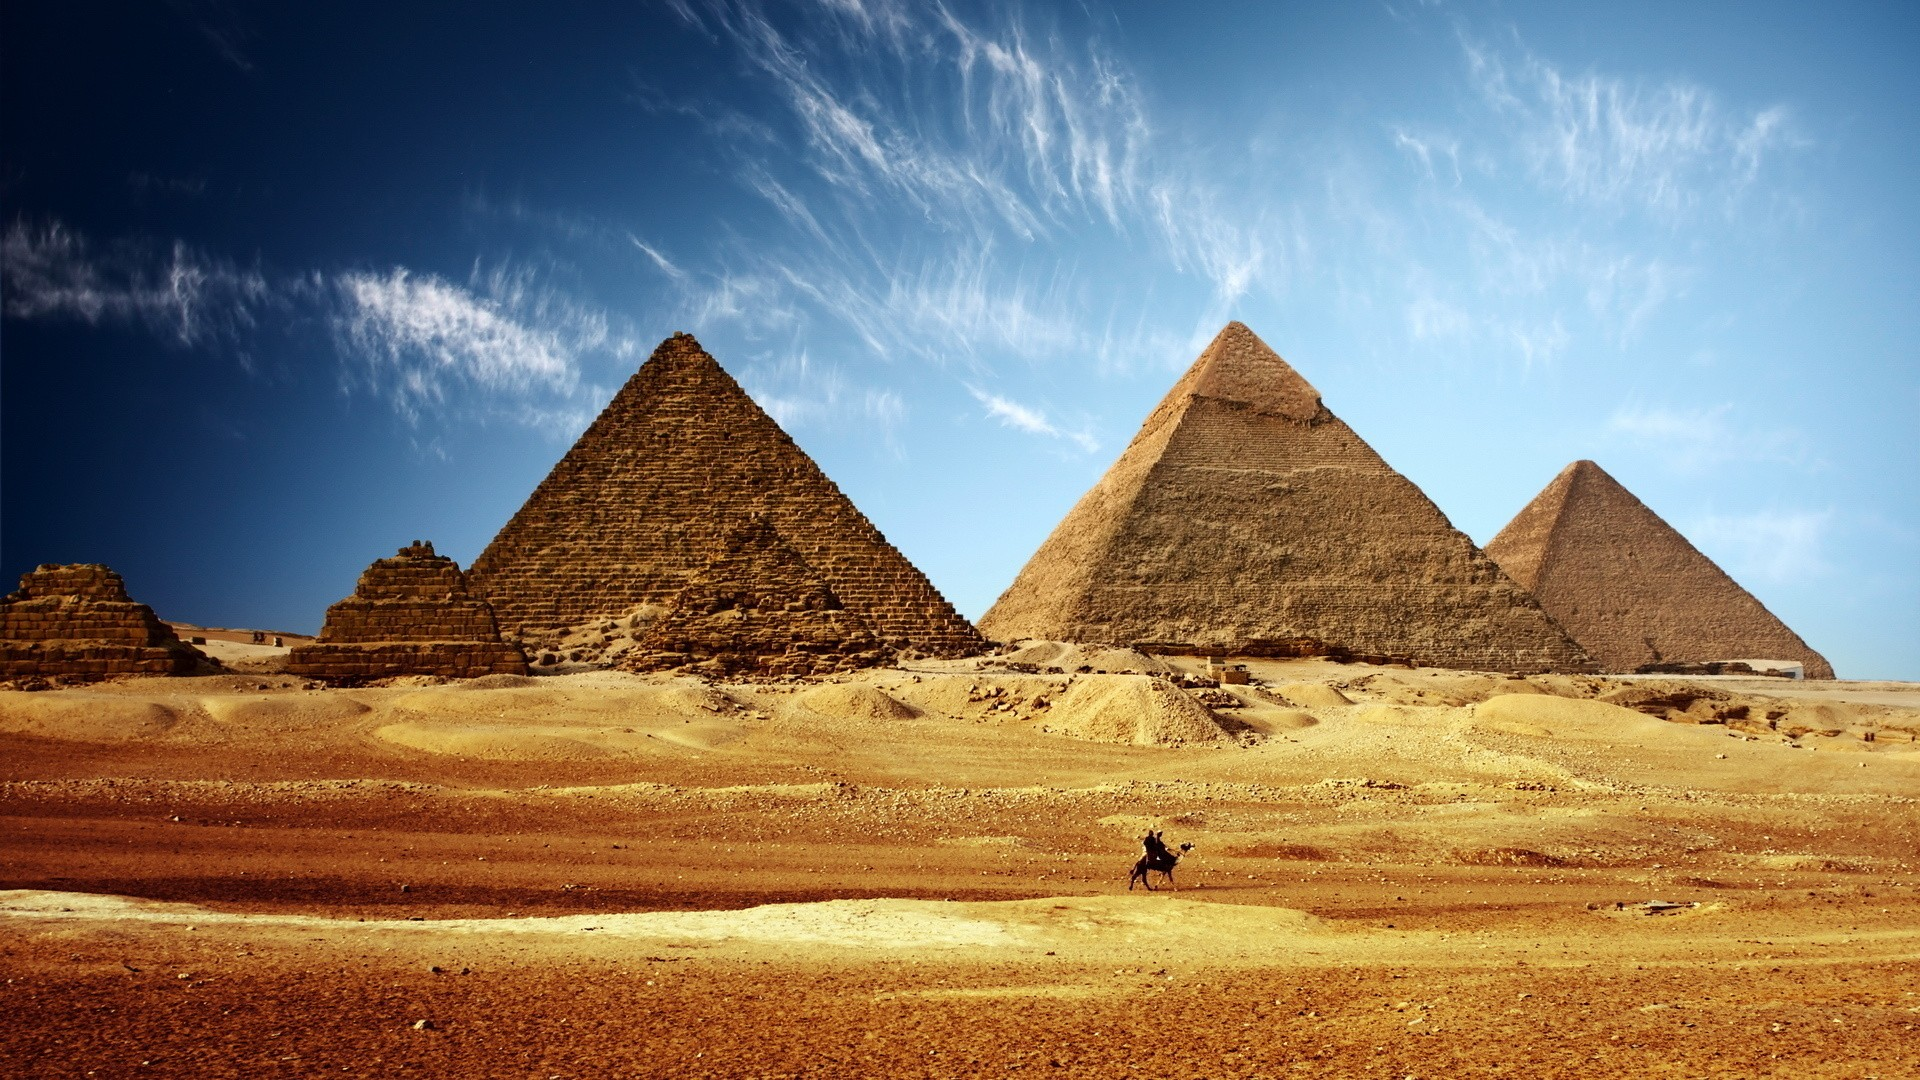 Pyramids in Egypt Desert 1759.78 Kb